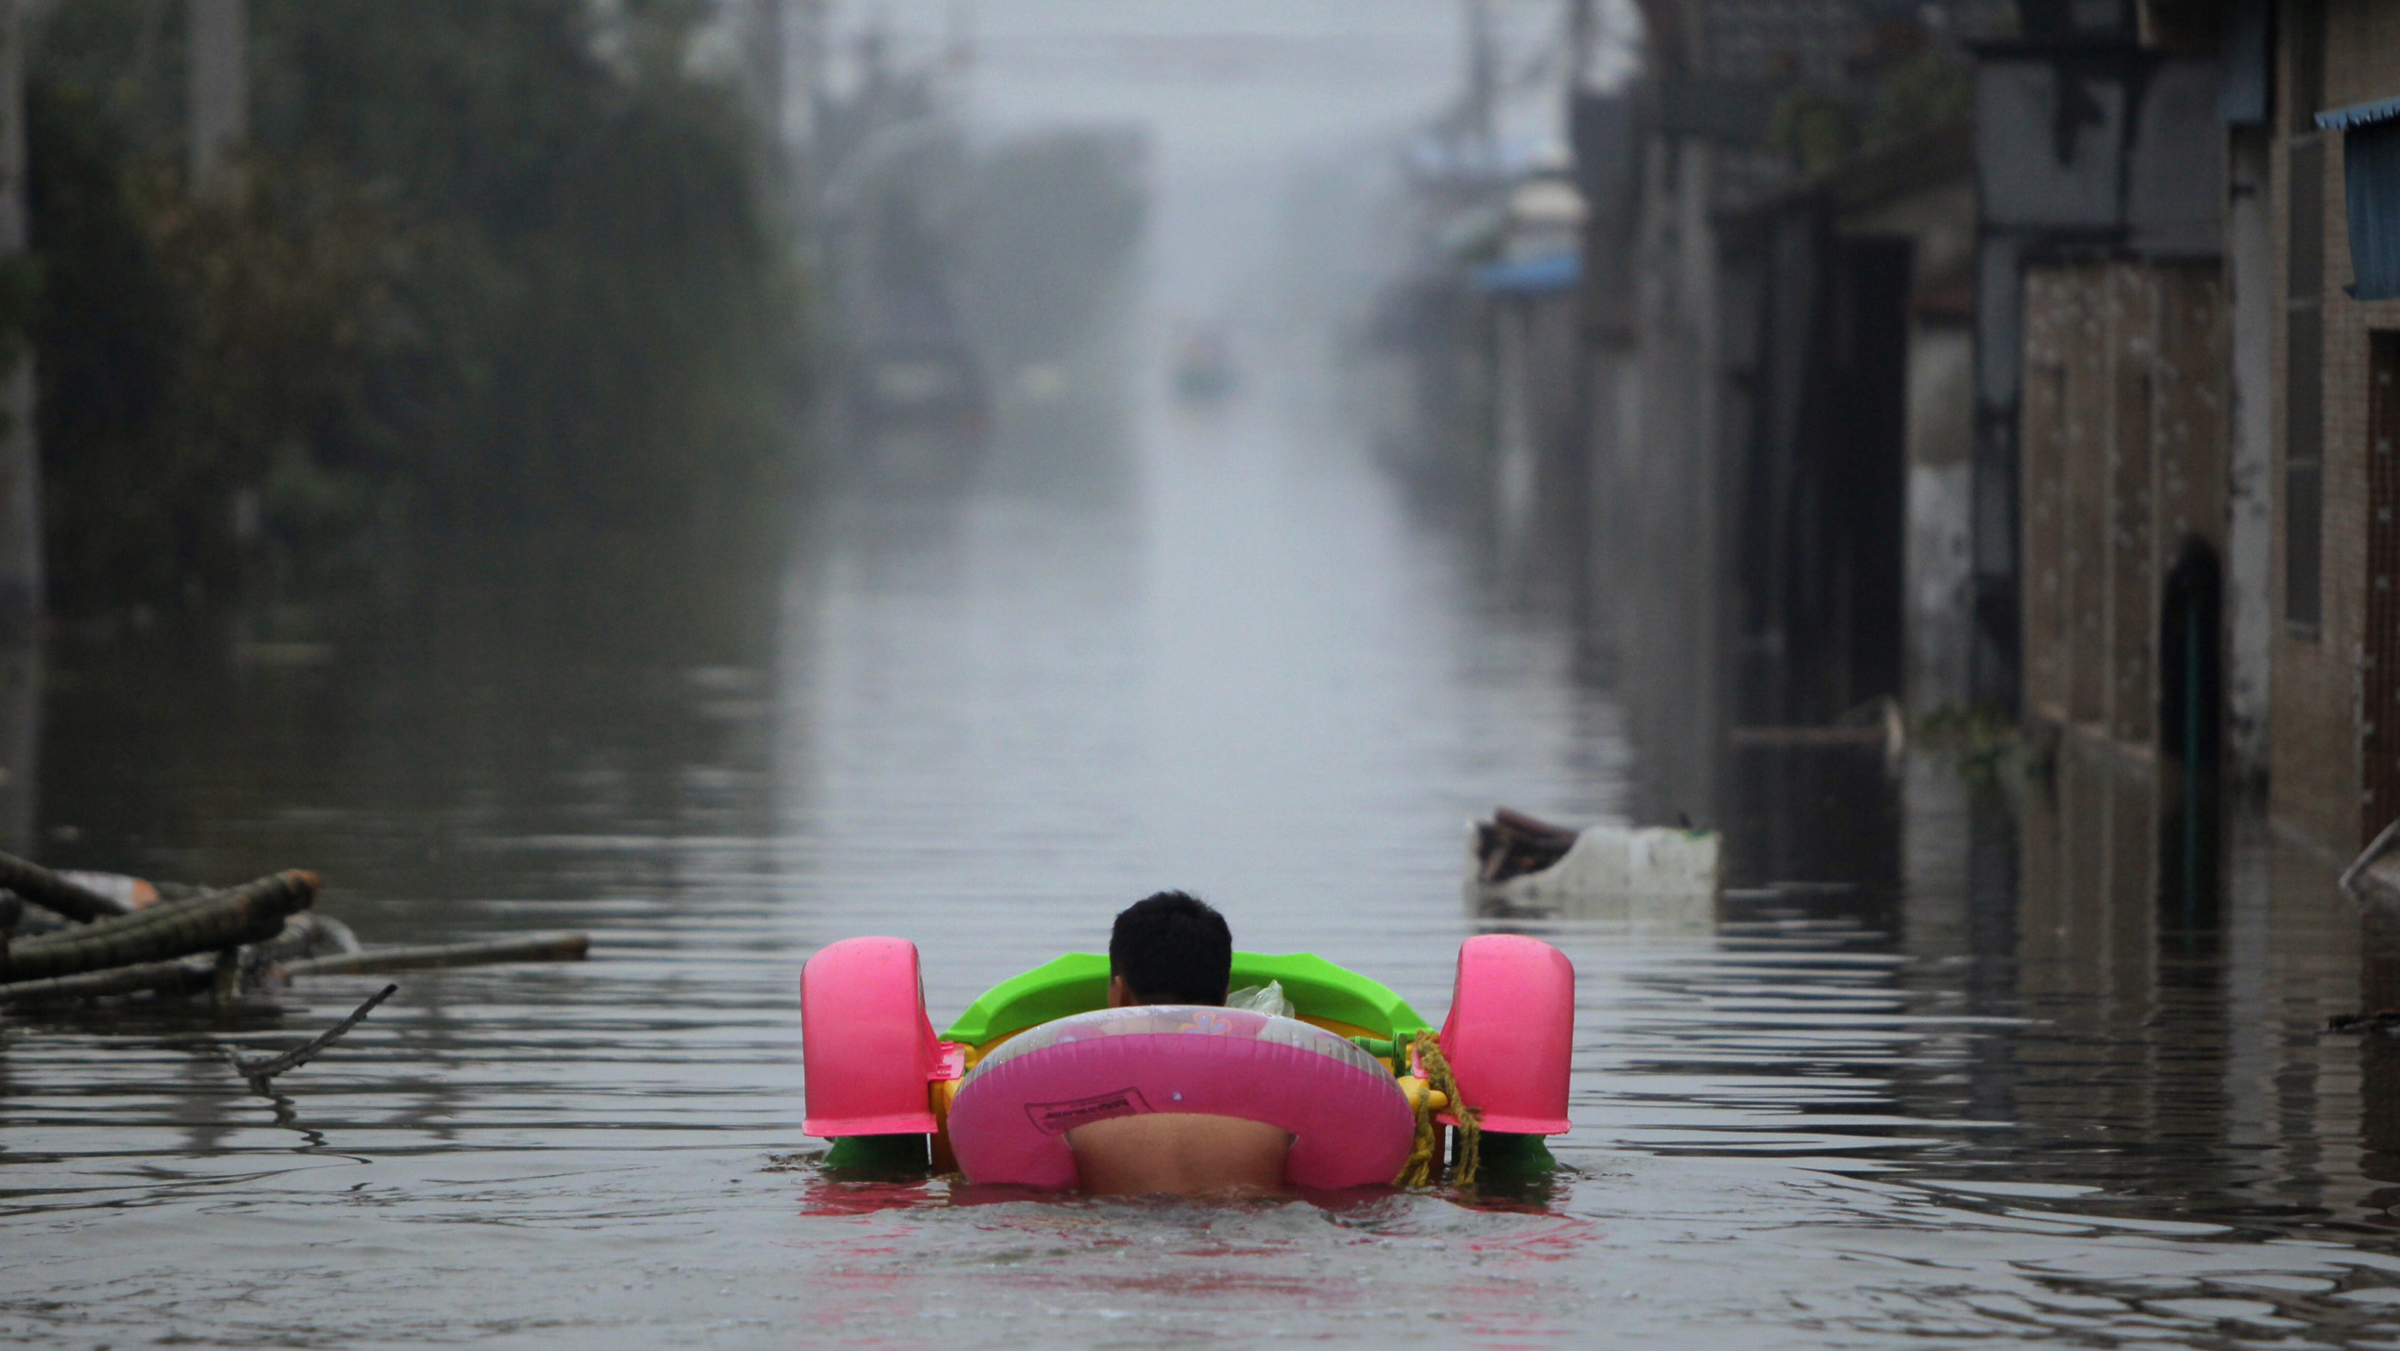 A man pushes a toy boat as he wades down a flooded street with a lifebuoy after Typhoon Fitow hit Tongguang village of Yuyao, Zhejiang province October 9, 2013. Heavy downpours hit Zhejiang and Fujian provinces after Typhoon Fitow made landfall in China on Monday, inundating roads and houses, and causing river breaches and power failures. Over 70 percent of the downtown area of the worst-hit Yuyao city has been flooded though no casualties have been reported so far, Xinhua News Agency reported. Picture taken October 9, 2013. REUTERS/China Daily